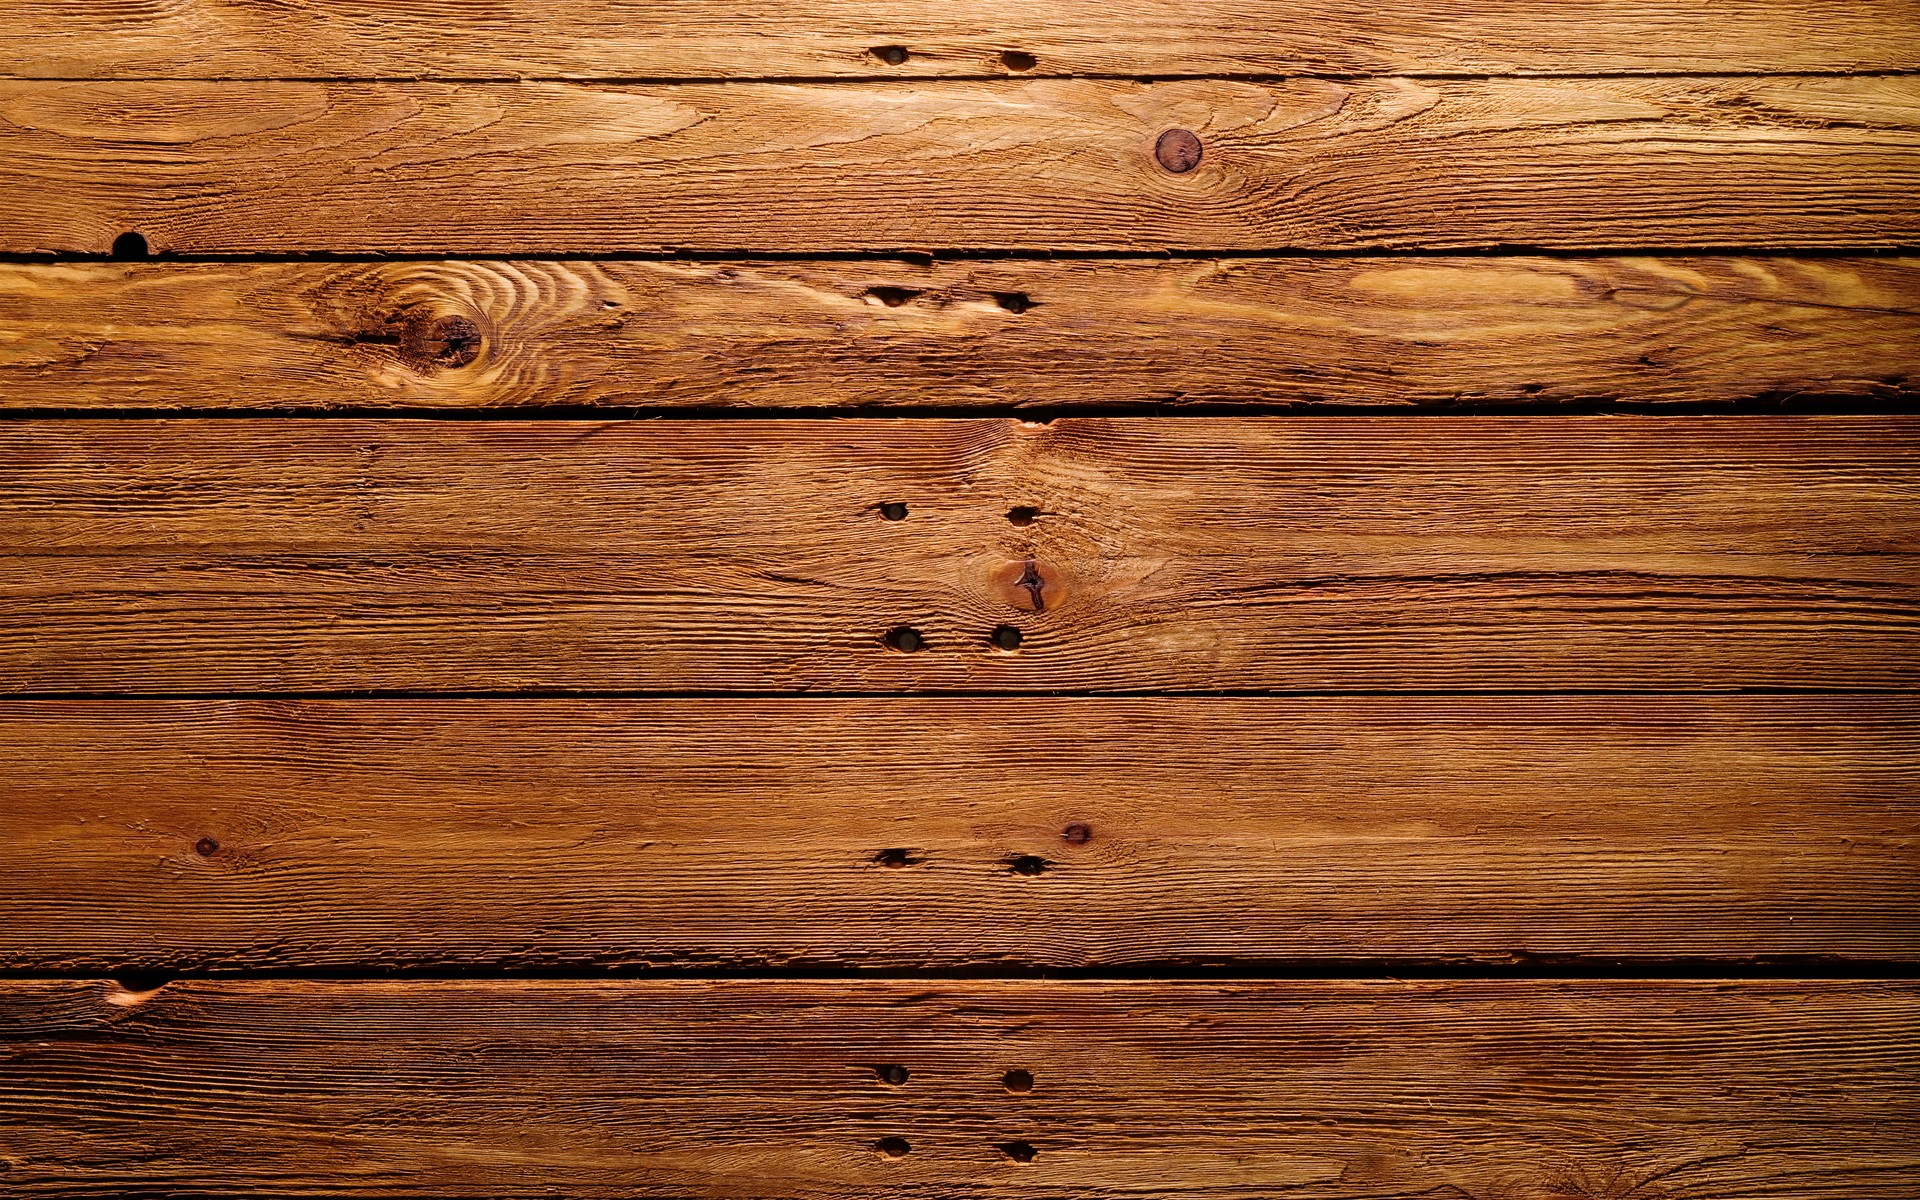 Wood textures wallpaper 1920x1200 9486 WallpaperUP 1920x1200